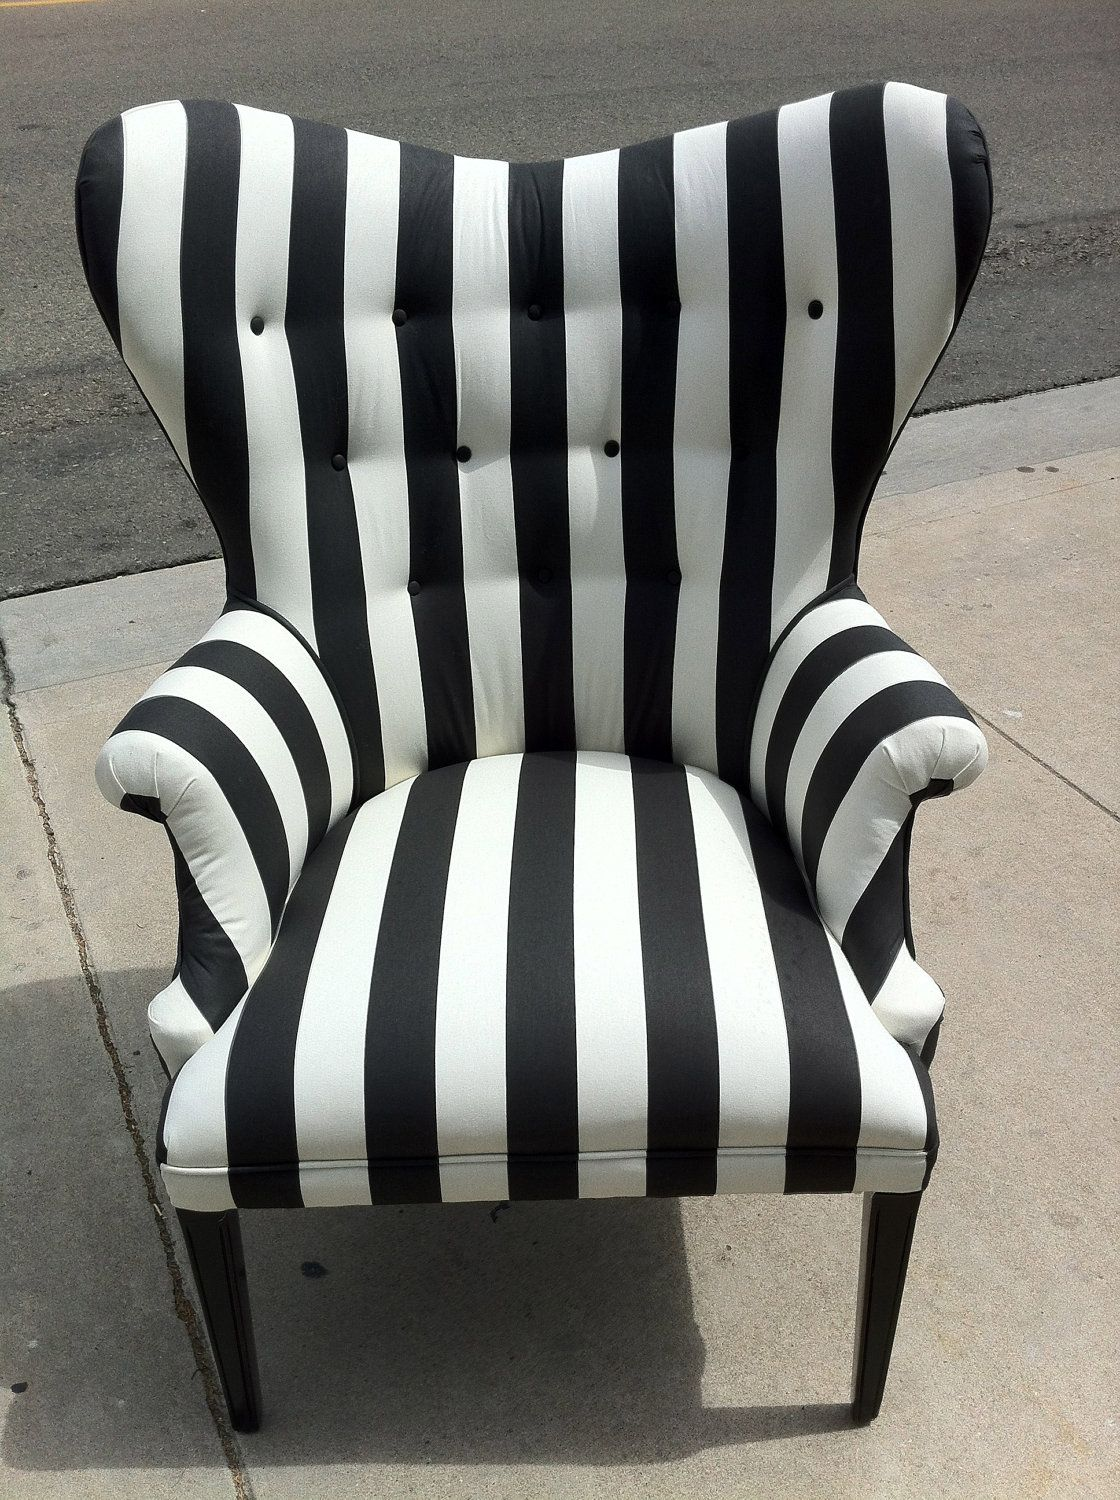 Black White Chair Black And White Striped Chair By Poeticrockstar On Etsy